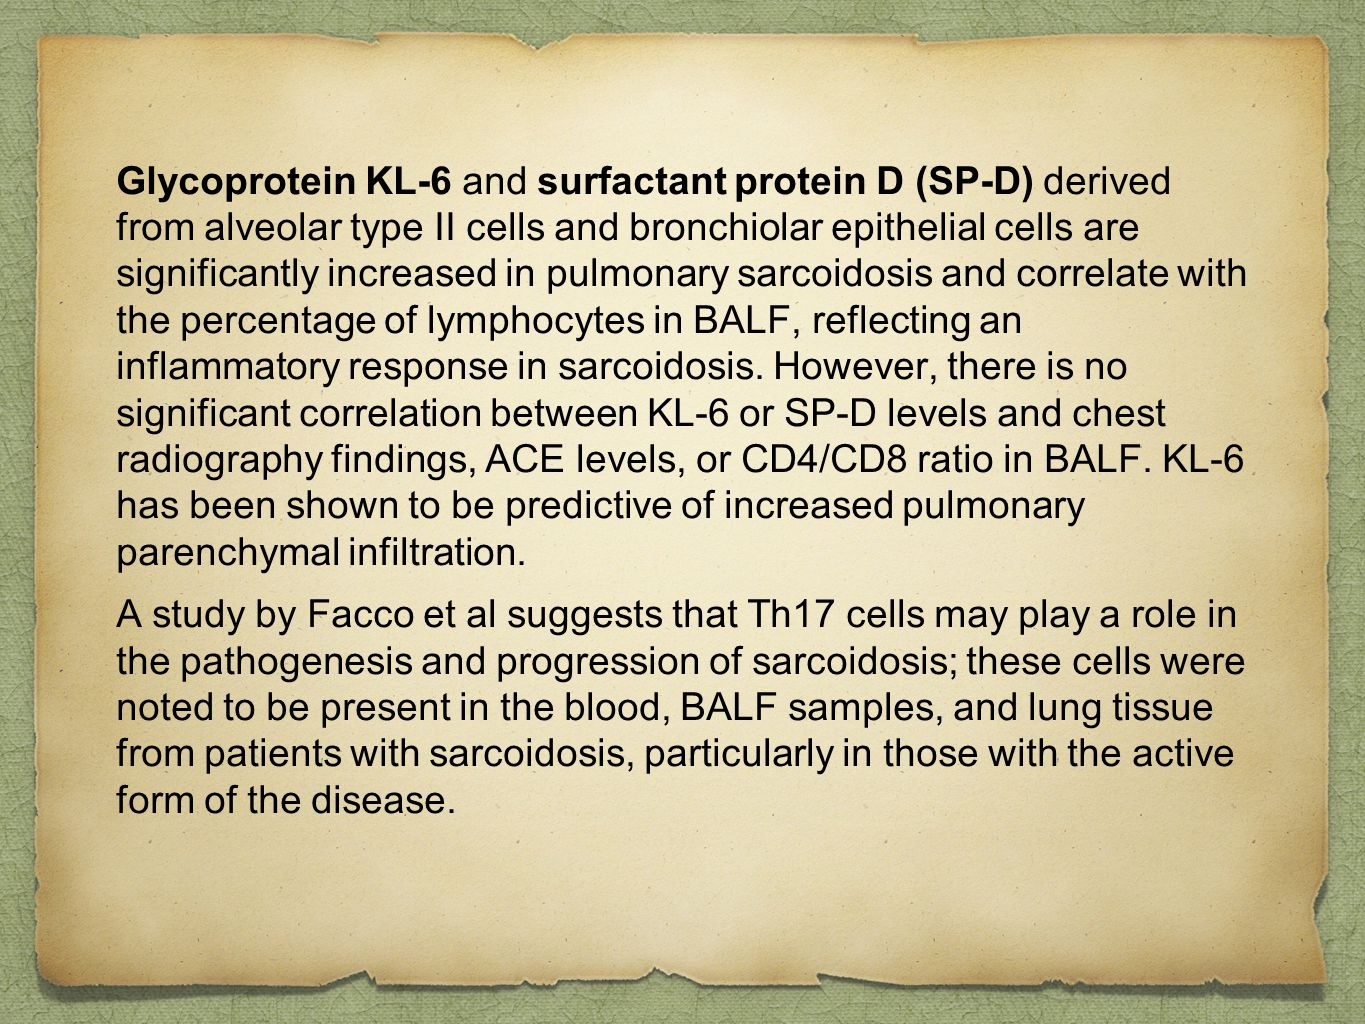 Glycoprotein KL-6 and surfactant protein D (SP-D) derived from alveolar type II cells and bronchiolar epithelial cells are significantly increased in pulmonary sarcoidosis and correlate with the percentage of lymphocytes in BALF, reflecting an inflammatory response in sarcoidosis. However, there is no significant correlation between KL-6 or SP-D levels and chest radiography findings, ACE levels, or CD4/CD8 ratio in BALF. KL-6 has been shown to be predictive of increased pulmonary parenchymal infiltration.